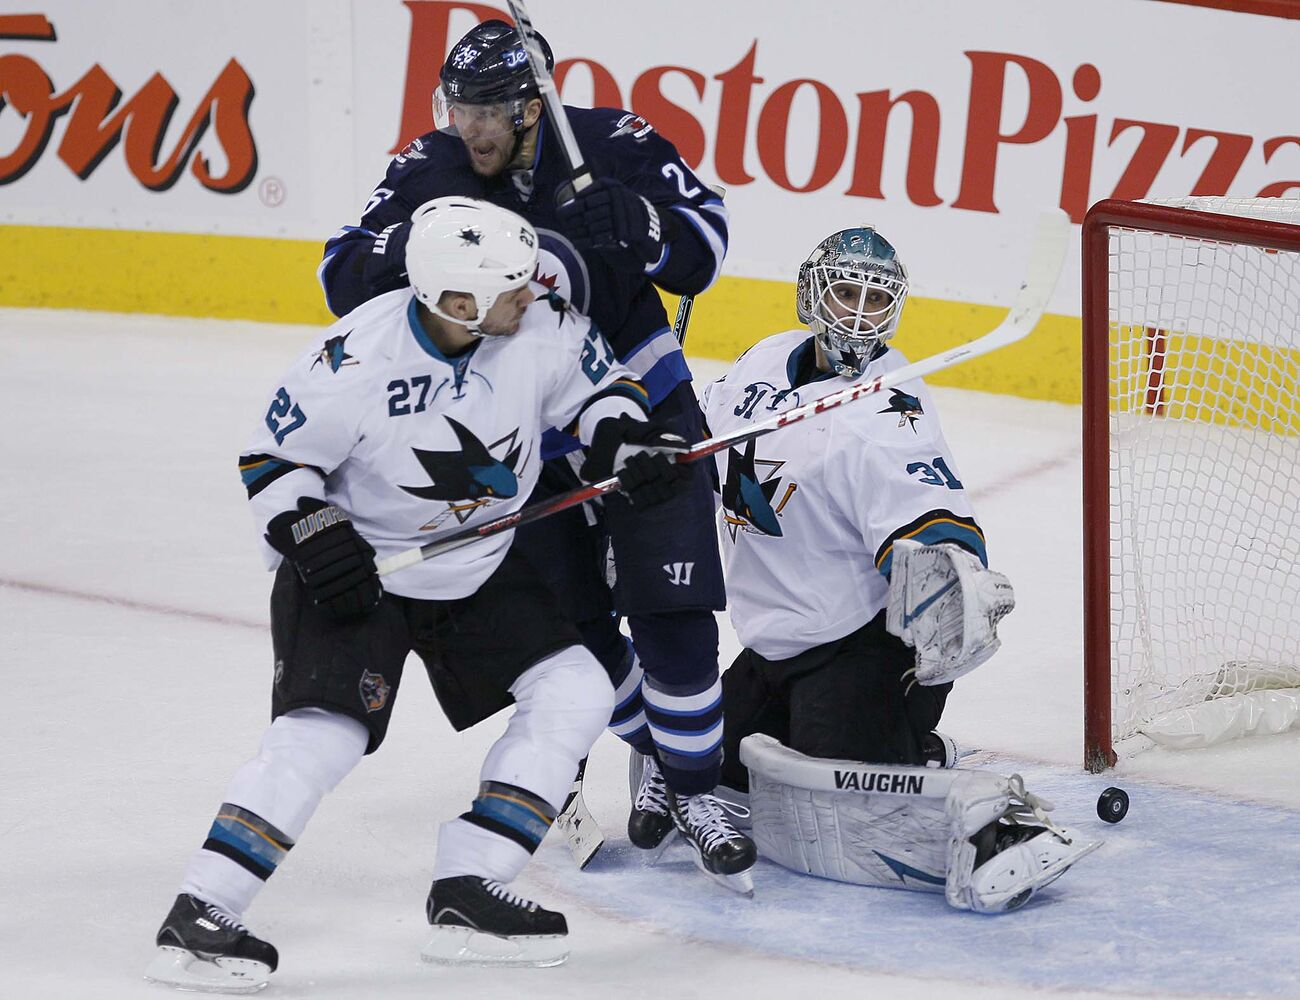 Winnipeg Jets' Blake Wheeler (26) celebrates Andrew Ladd's (16) late game tying goal against San Jose Sharks' Scott Hannan (27) and goaltender Antti Niemi (31) in third period action. (WINNIPEG FREE PRESS)